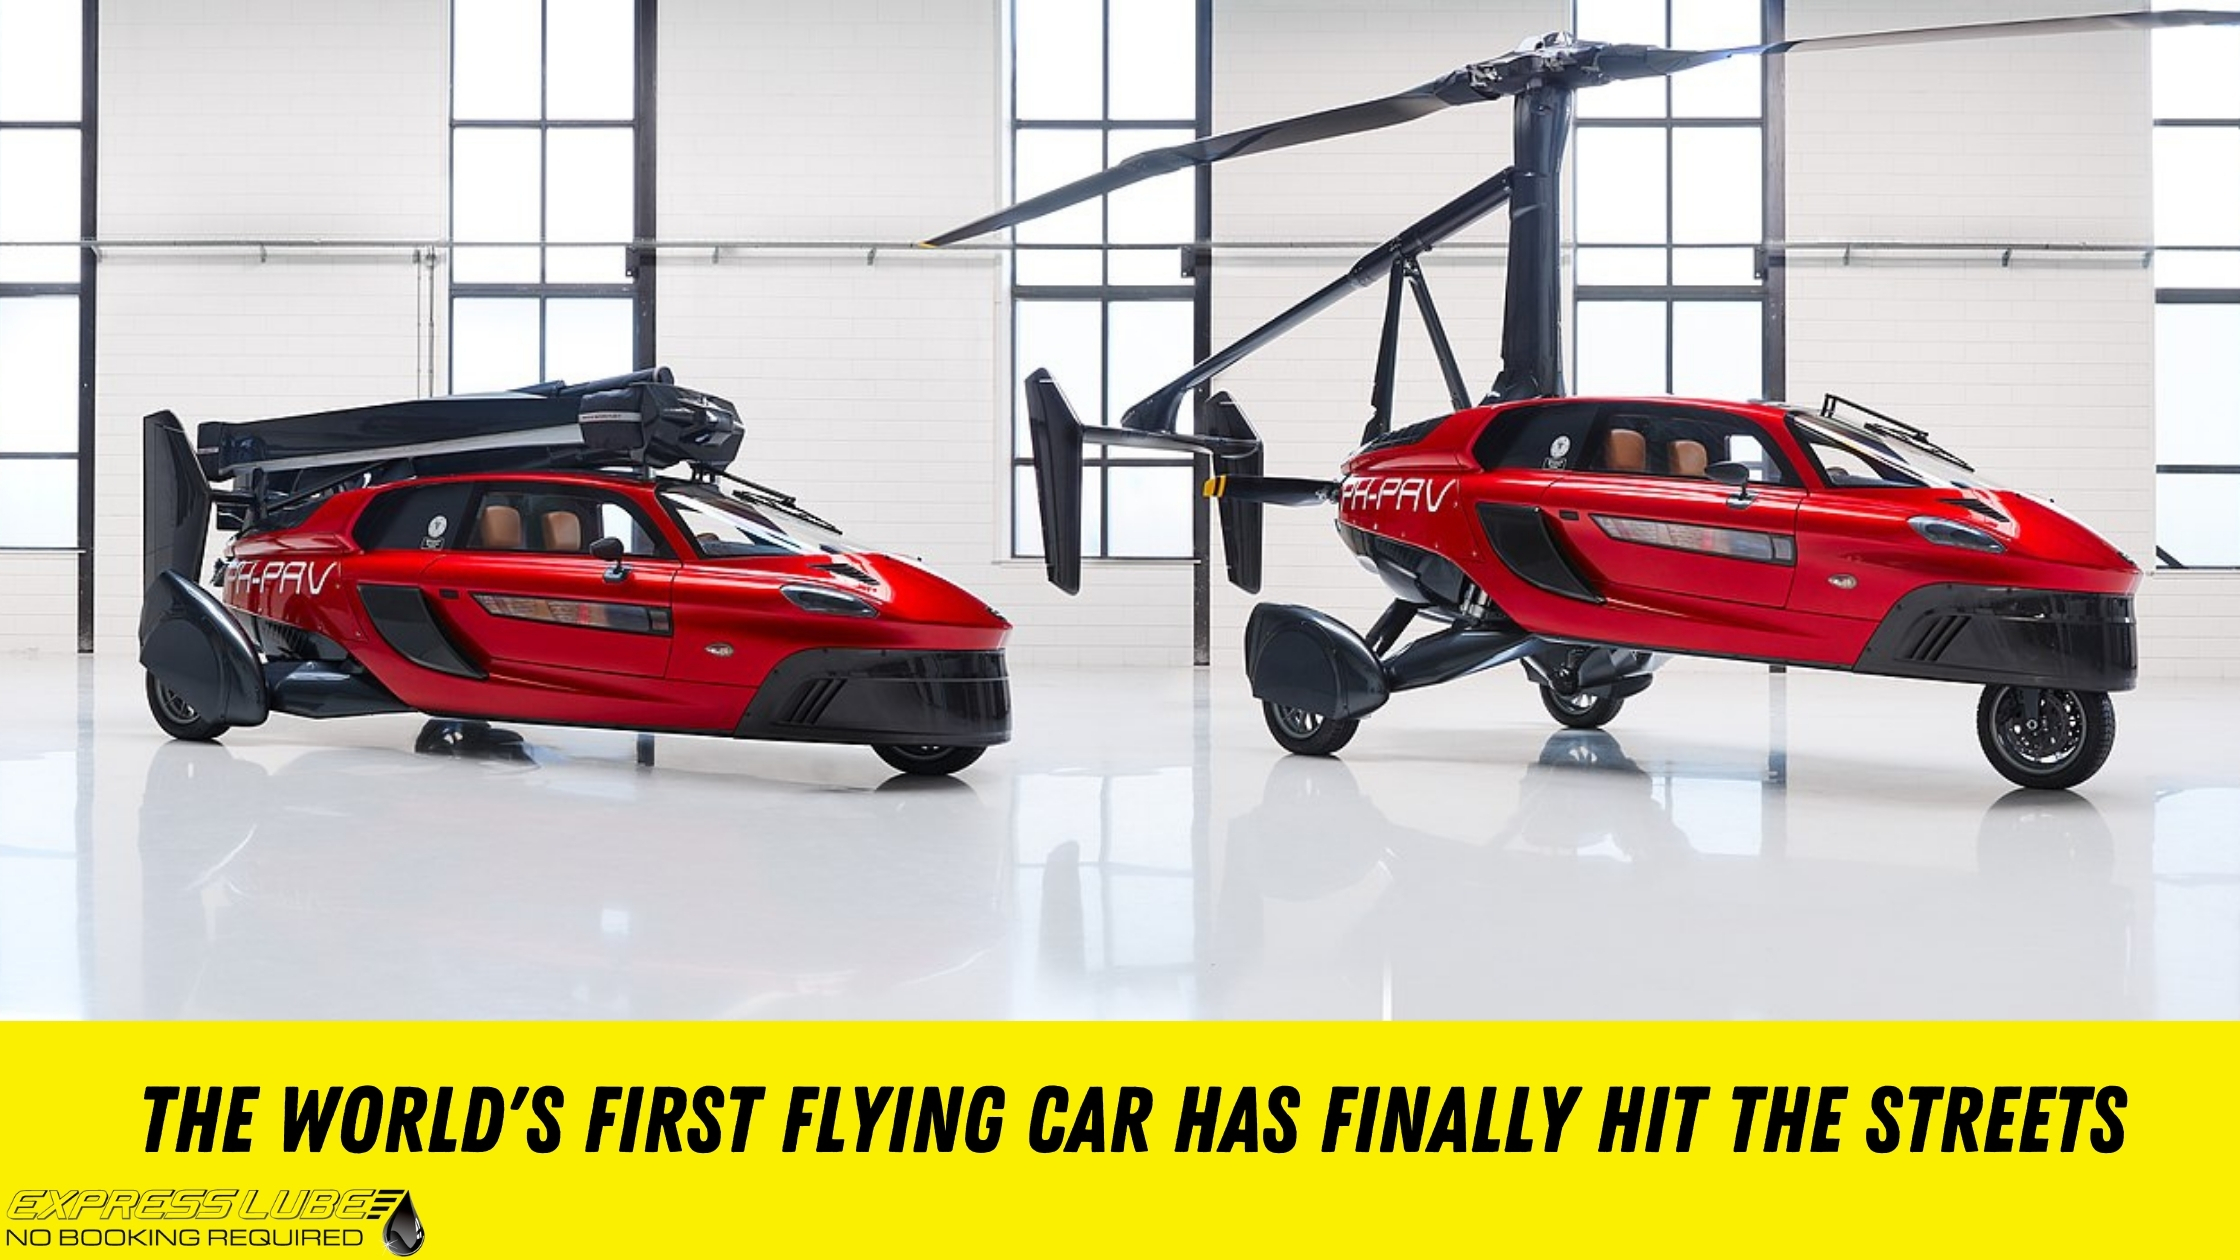 Flying cars are finally a reality: the world's first flying car - PAL-V Liberty - has hit the streets in Europe.